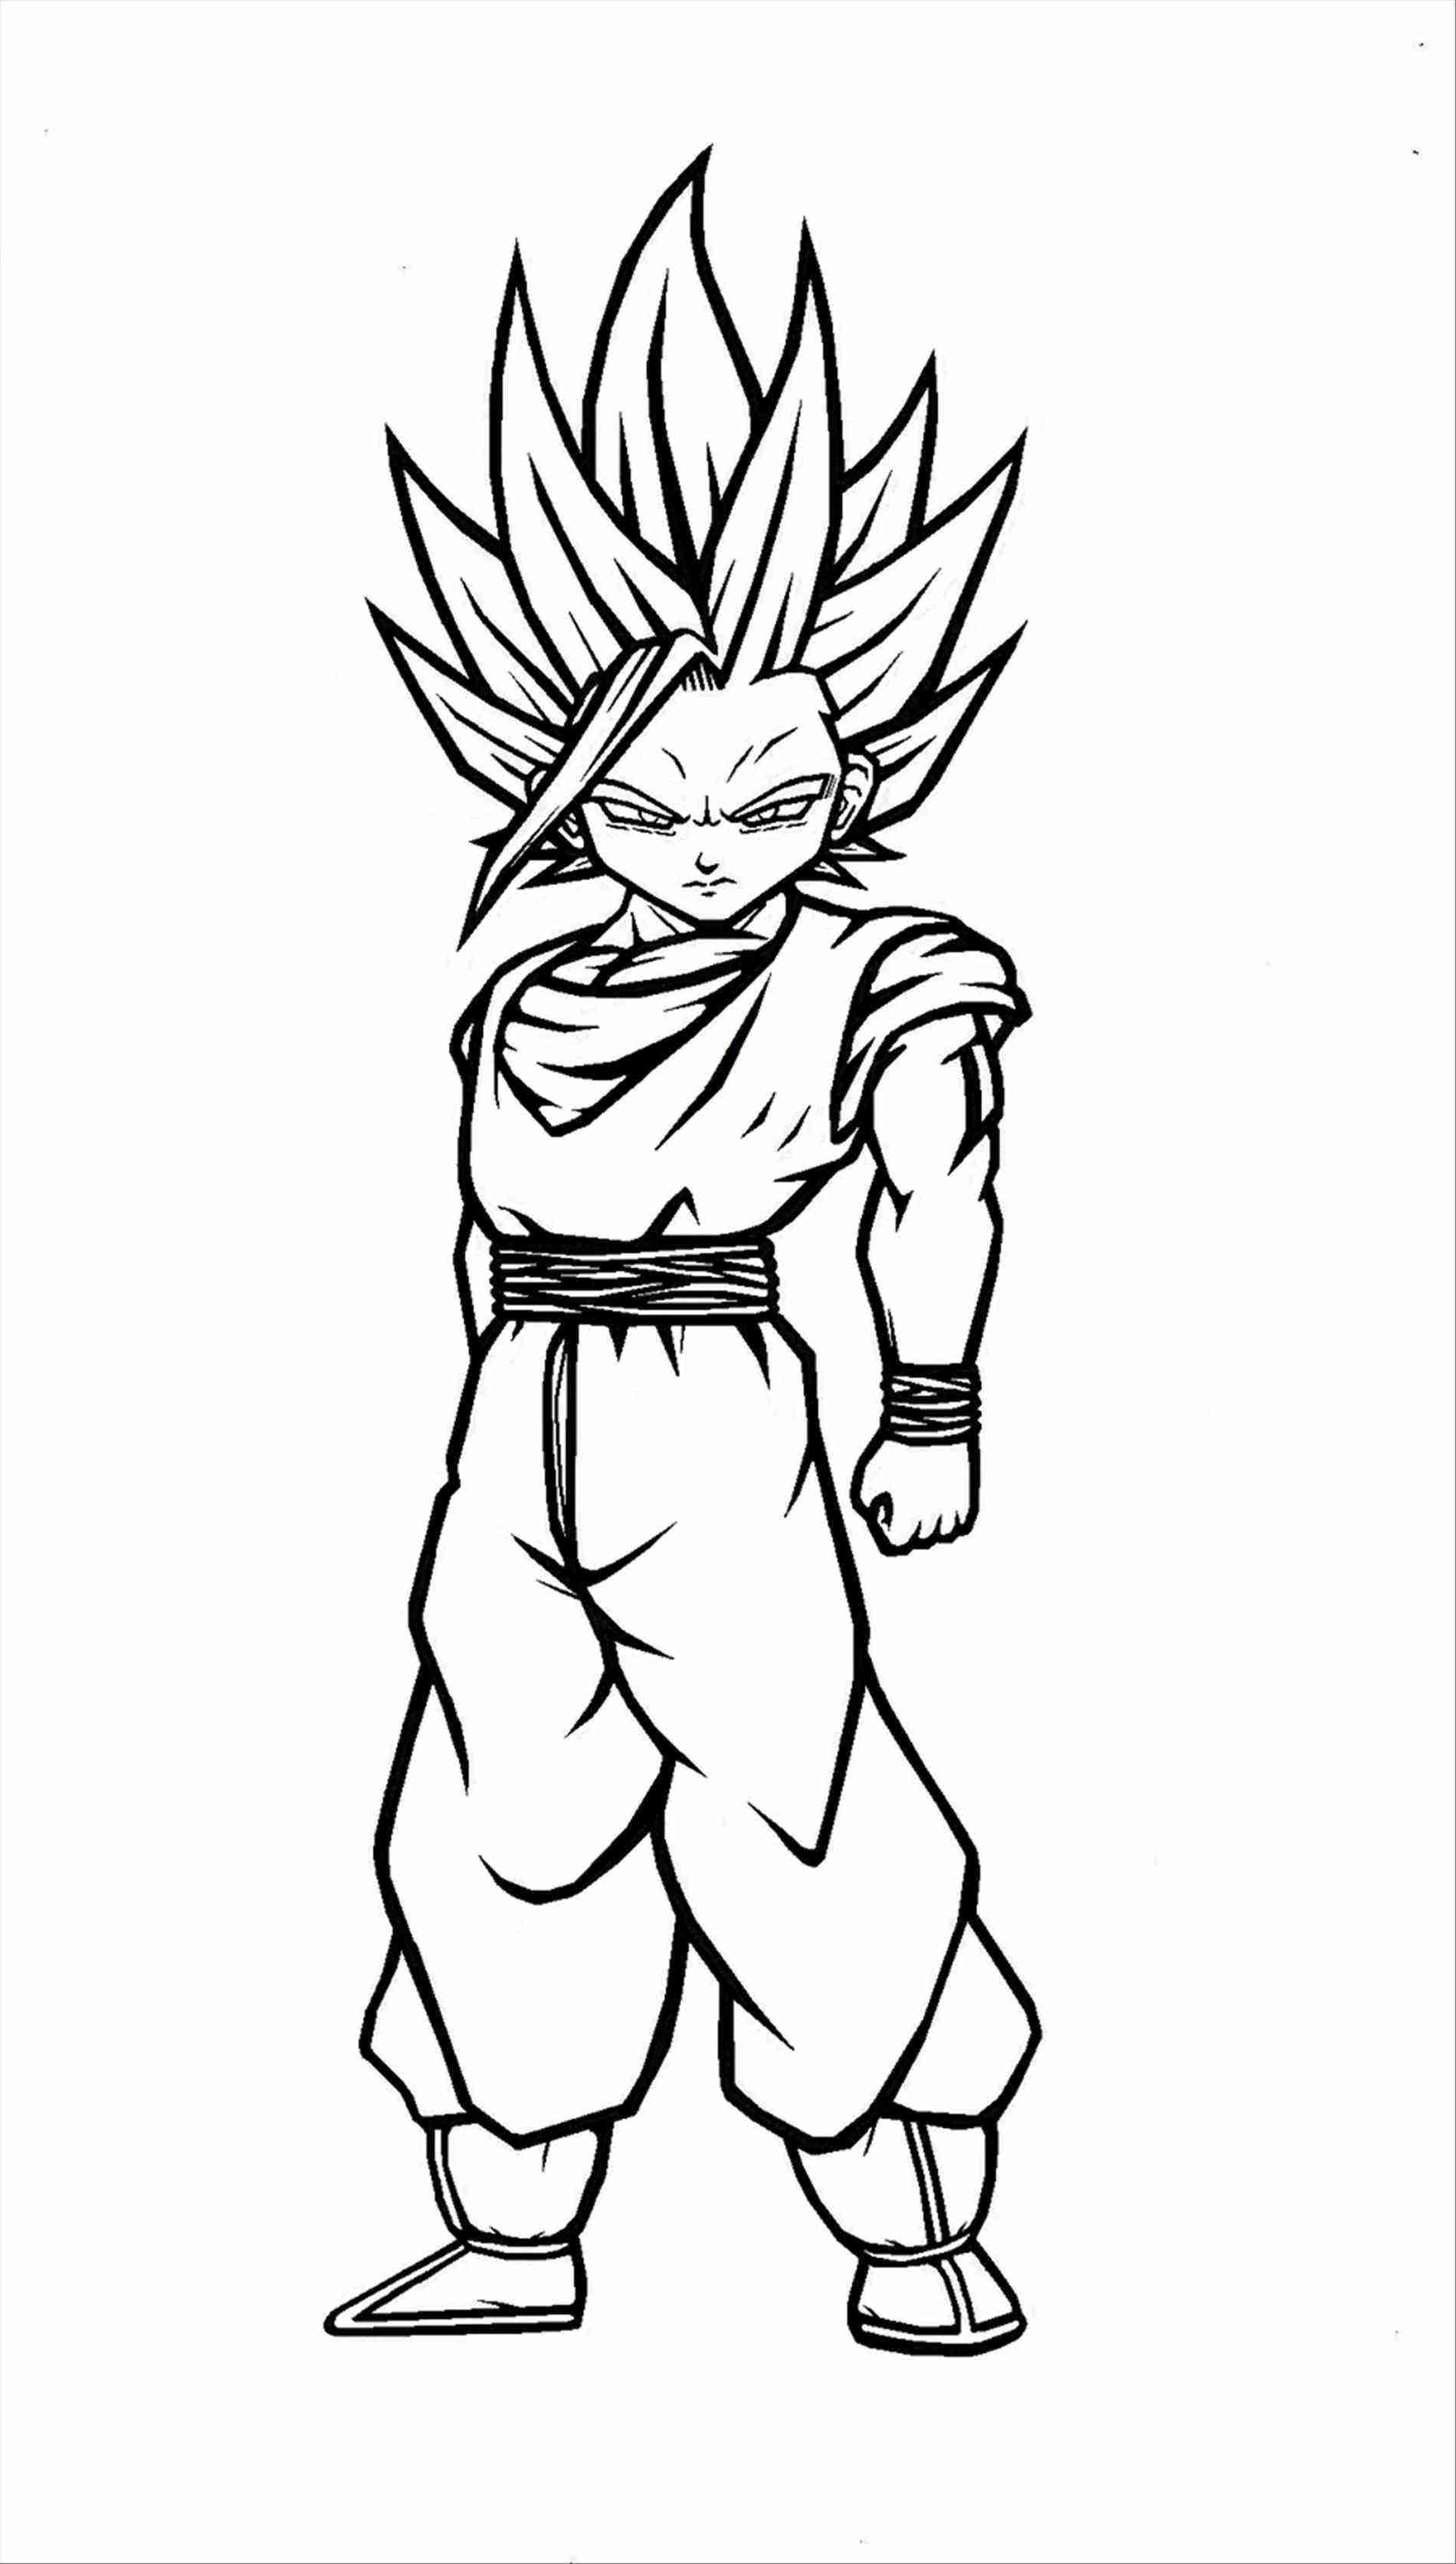 dragon ball z coloring pages gohan teen gohan kamehameha drawing places to visit gohan gohan coloring ball pages dragon z